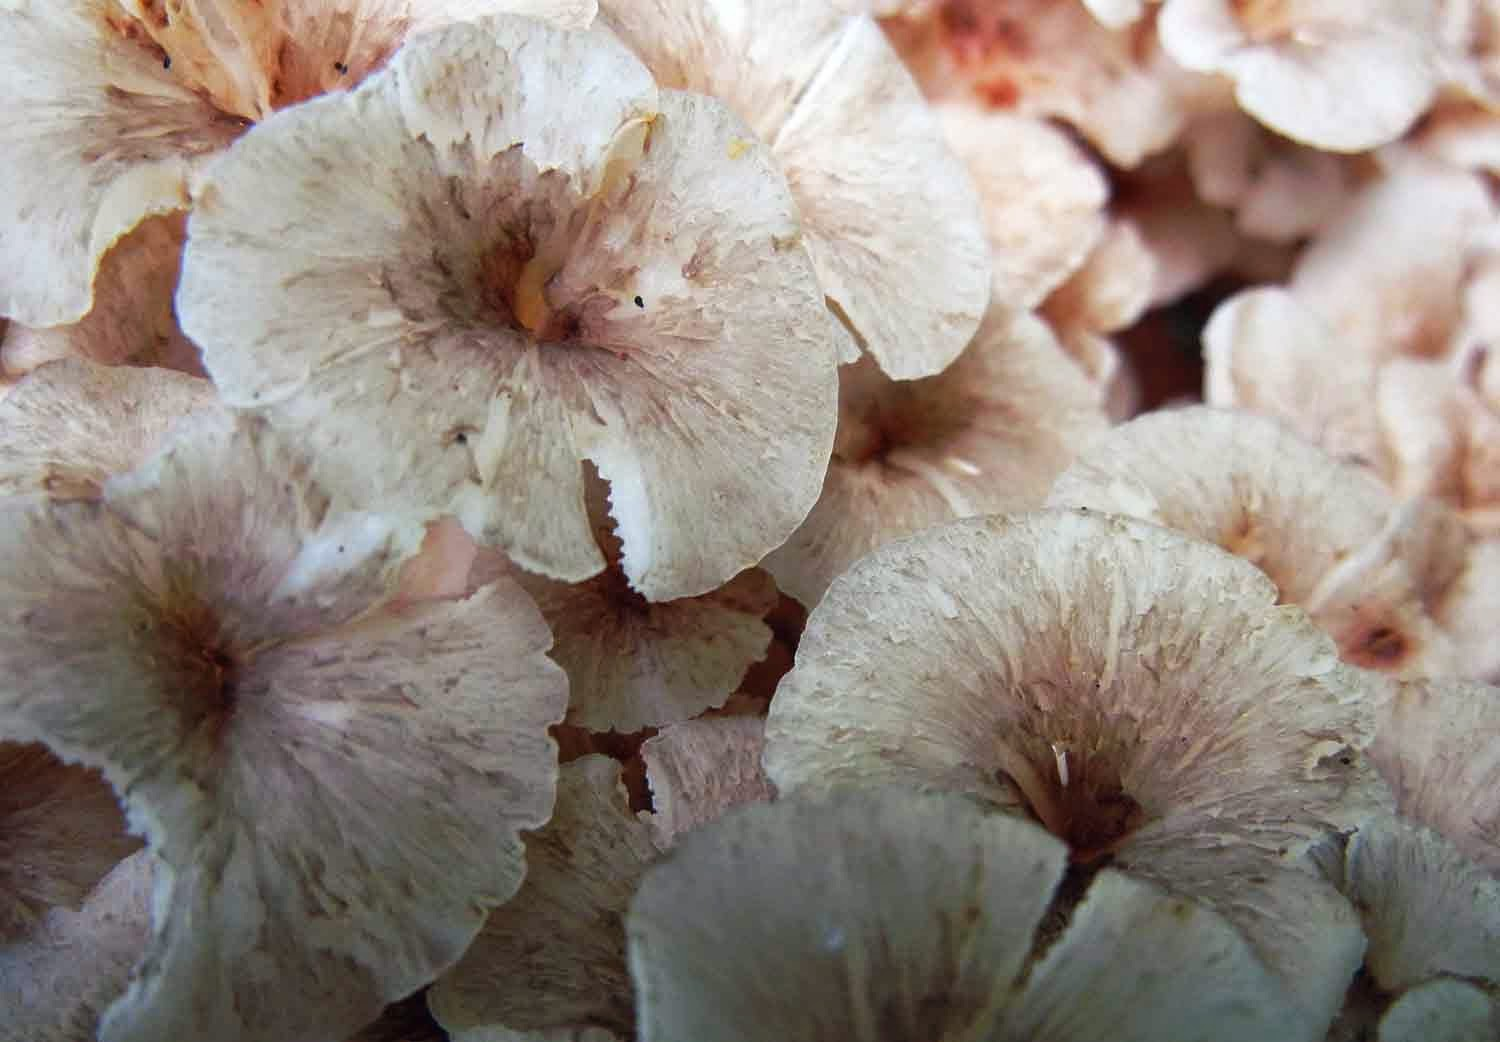 caps of Dendropolyporus umbellatus are umbilicate